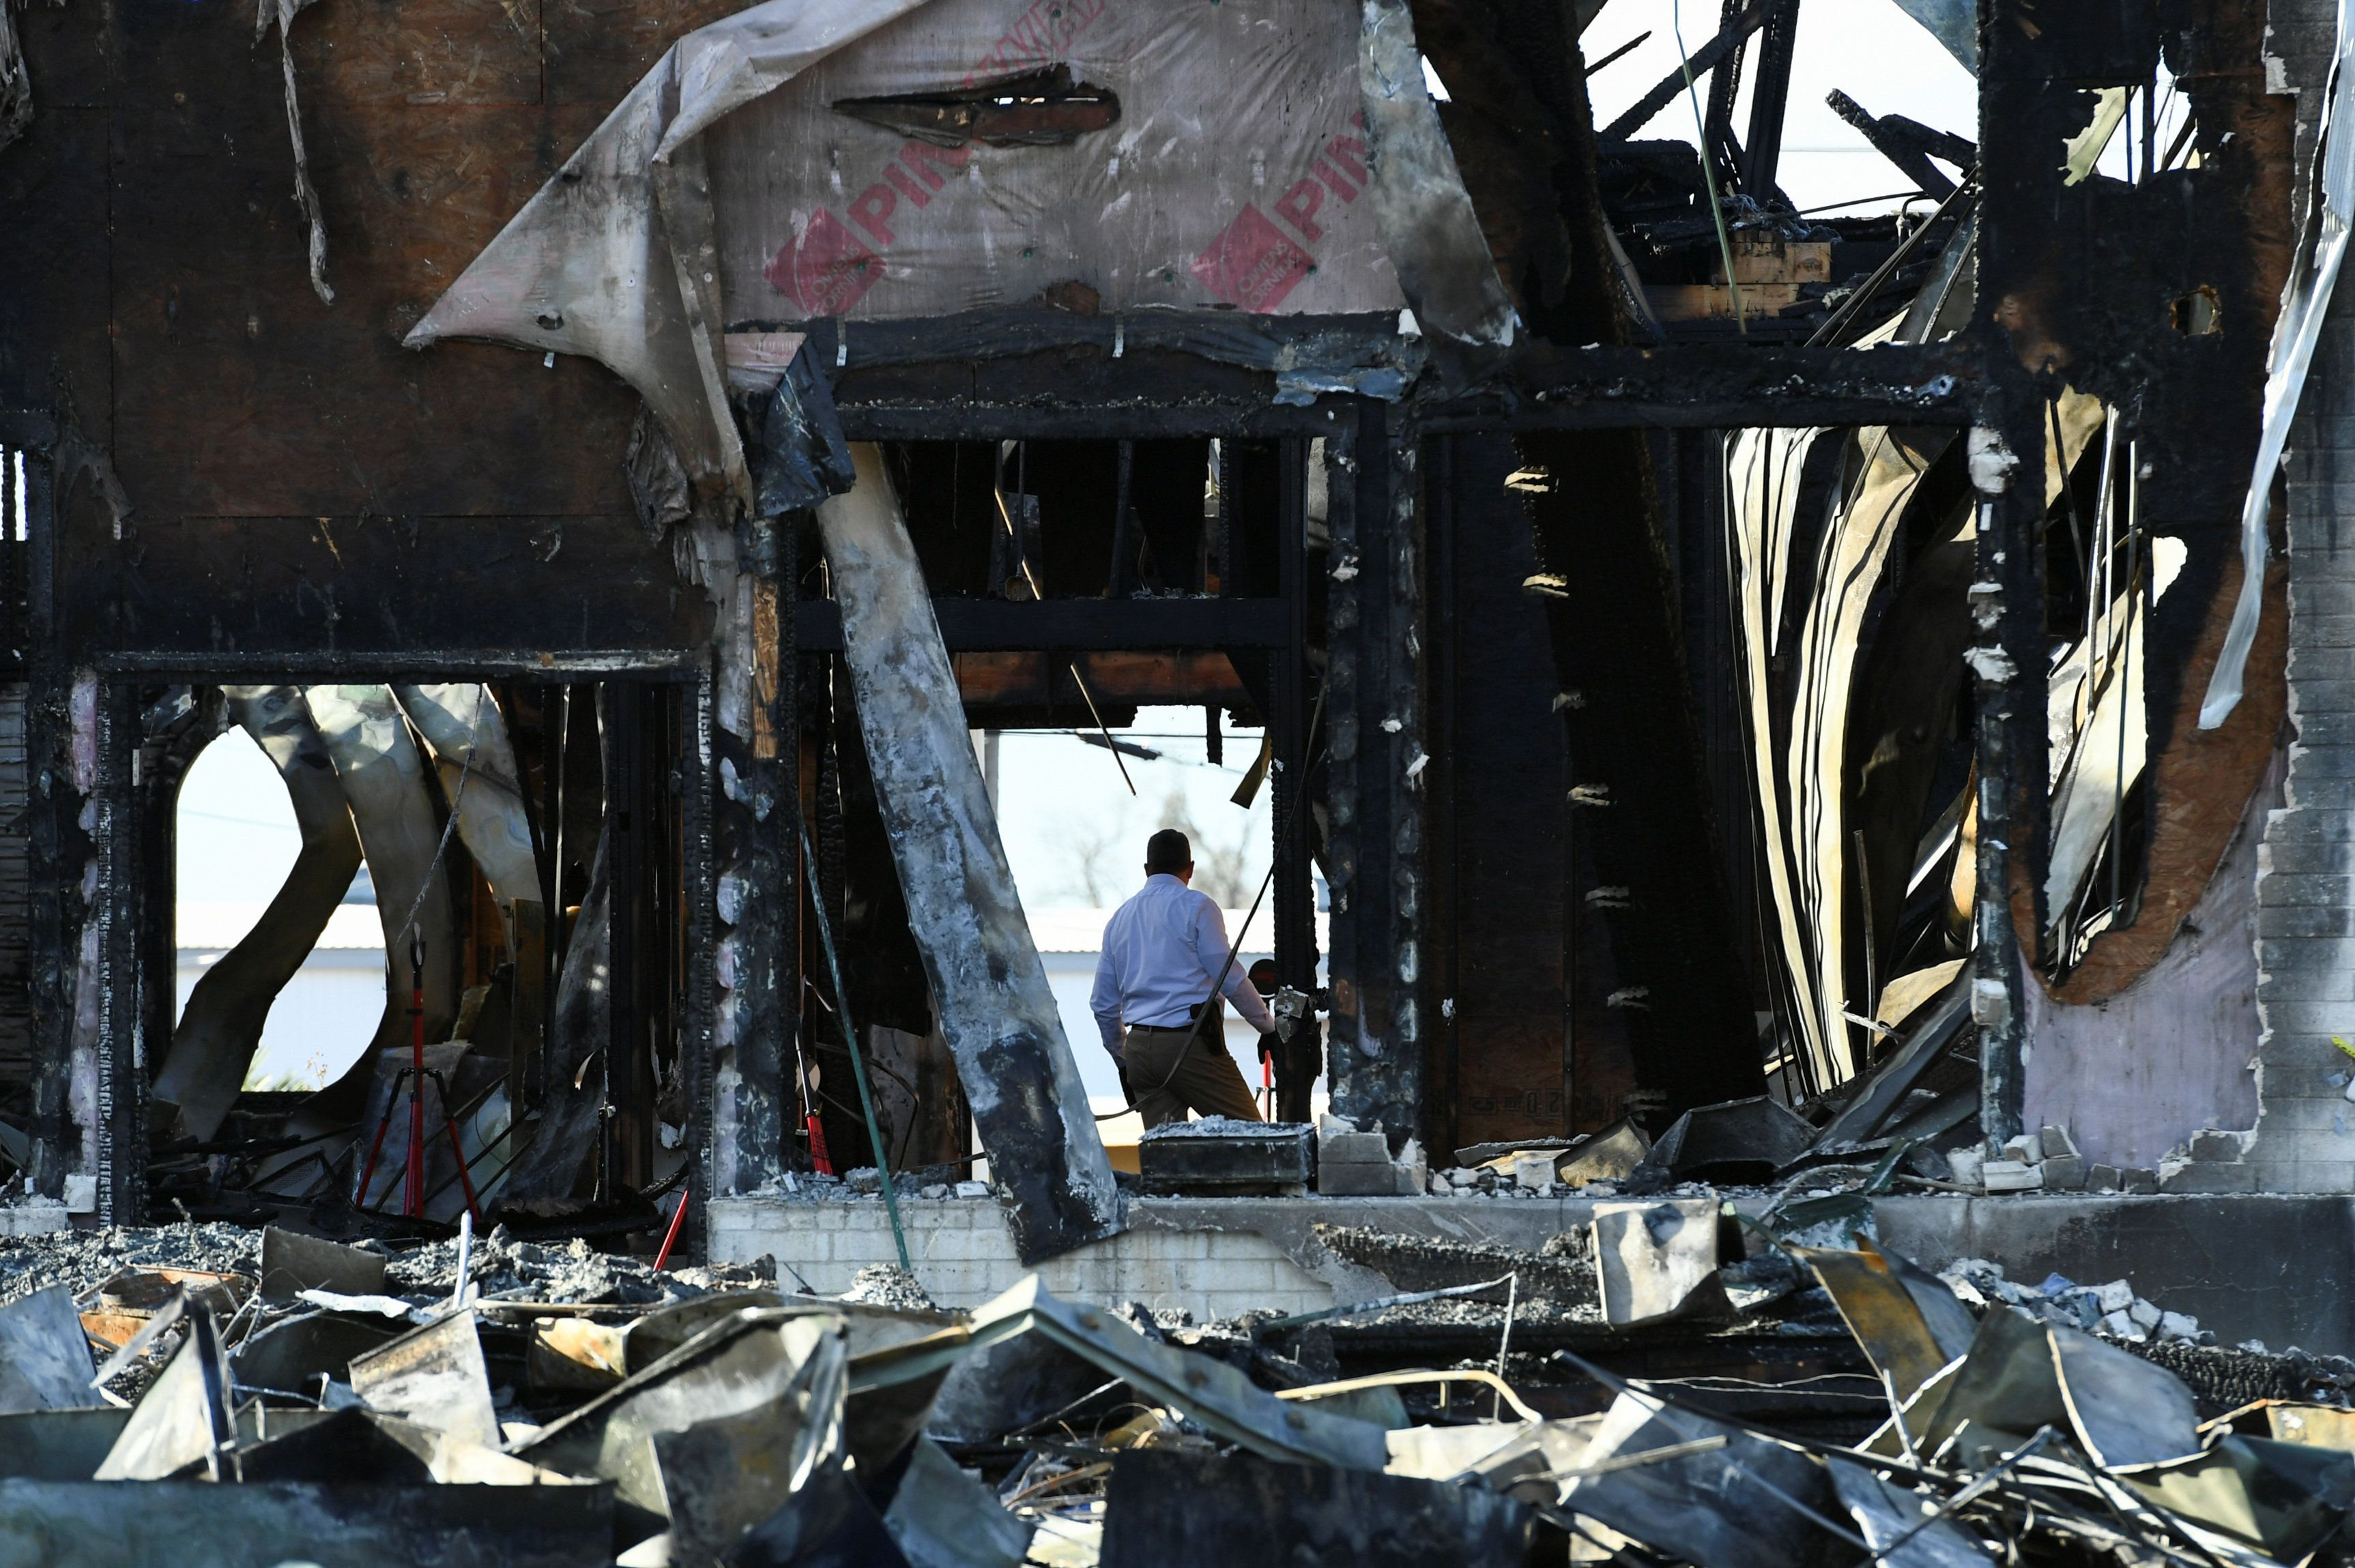 A security official investigates the aftermath of a fire at the Victoria Islamic Center mosque in Victoria, Texas January 29, 2017.  REUTERS/Mohammad Khursheed